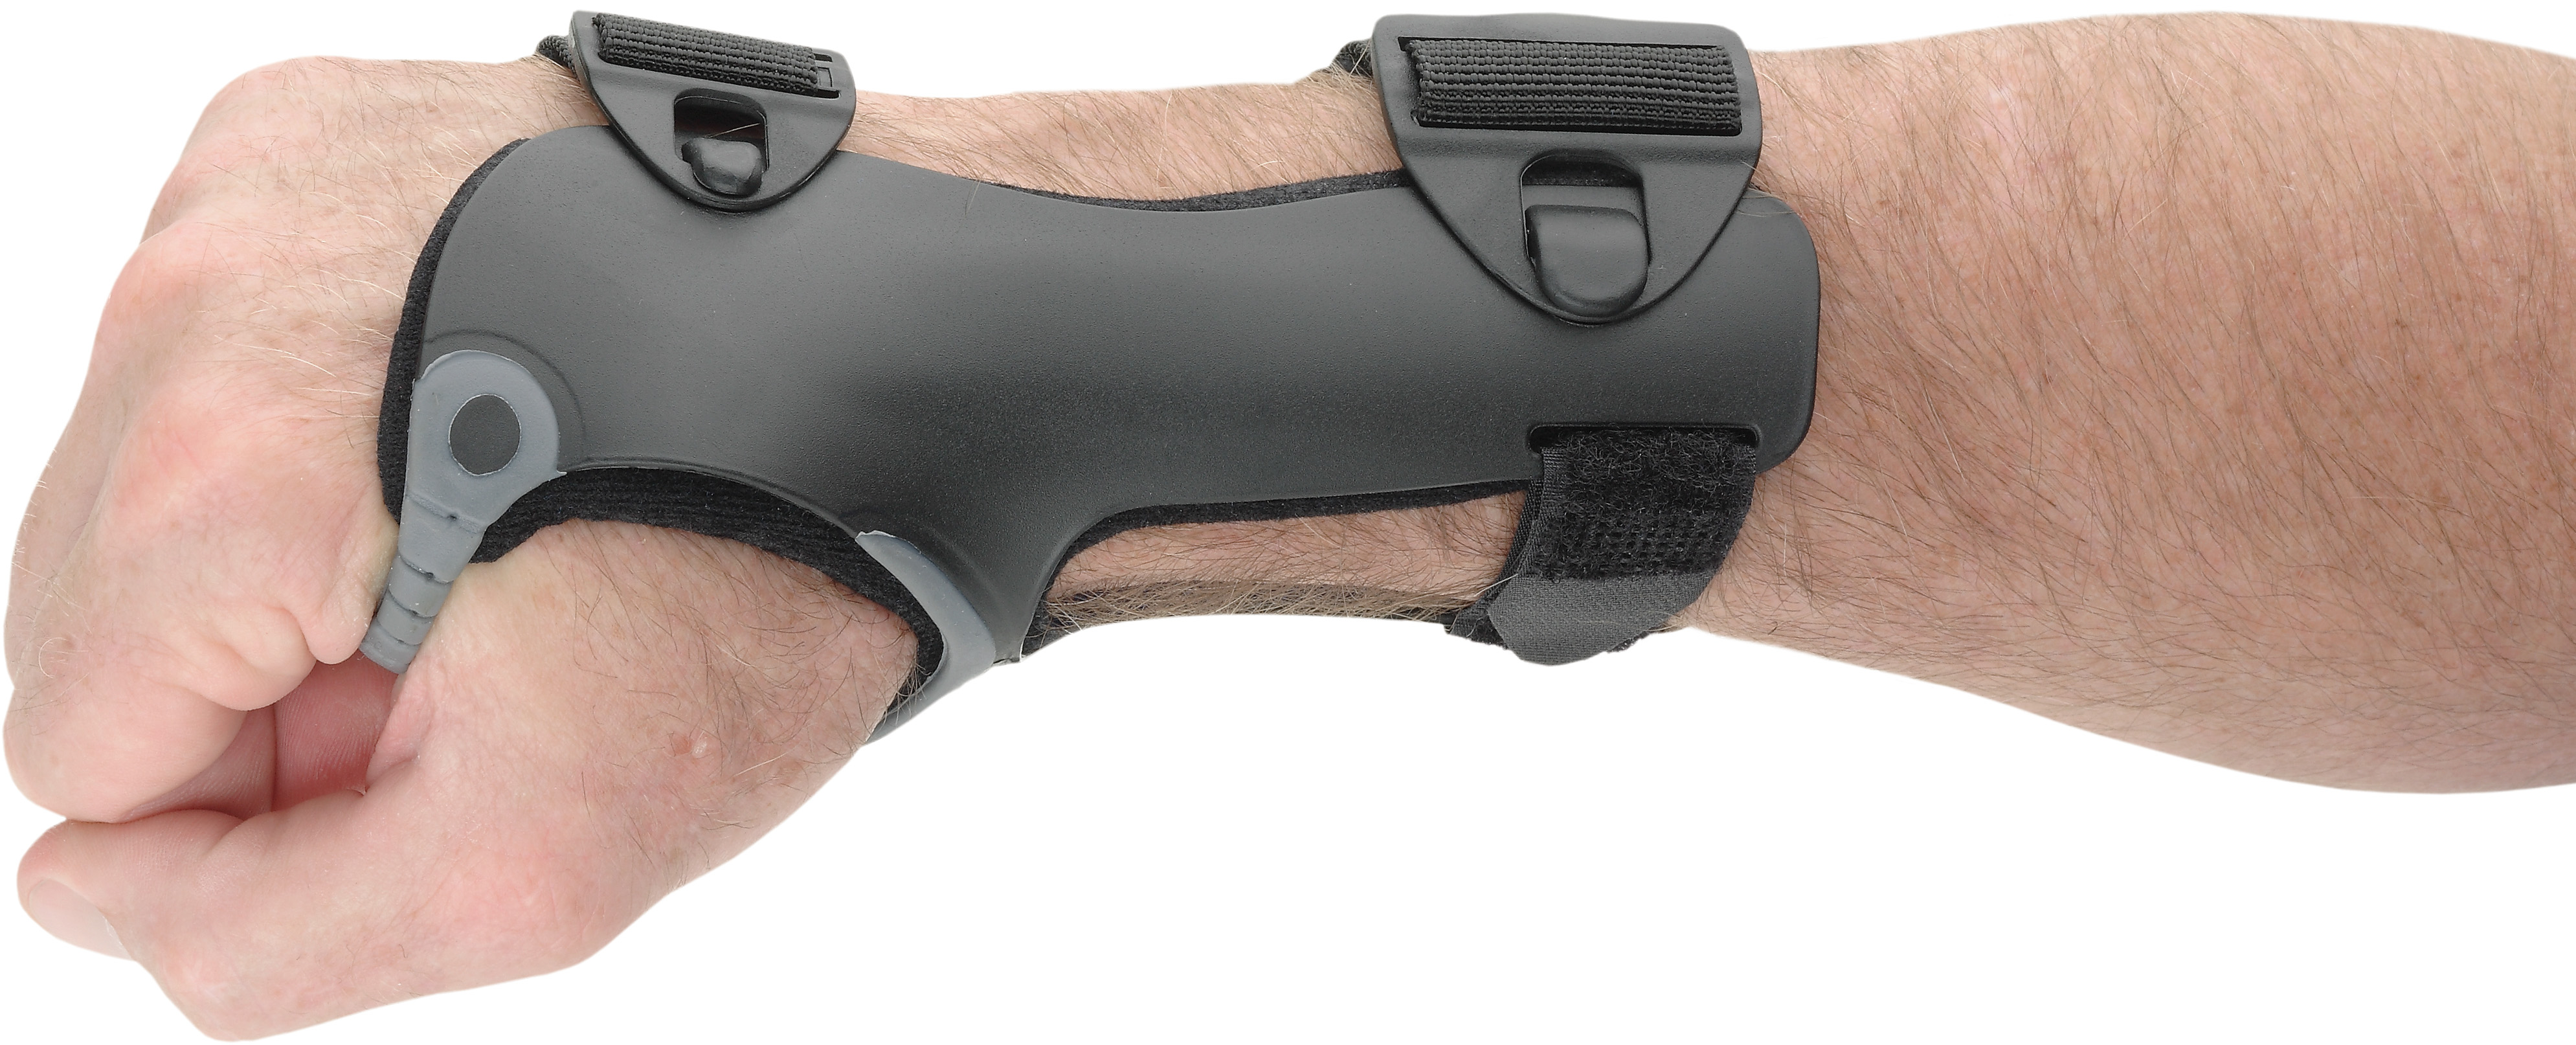 exoform-carpal-tunnel-wrist-brace-left-sm-517083-ossur-os378532-3.jpg